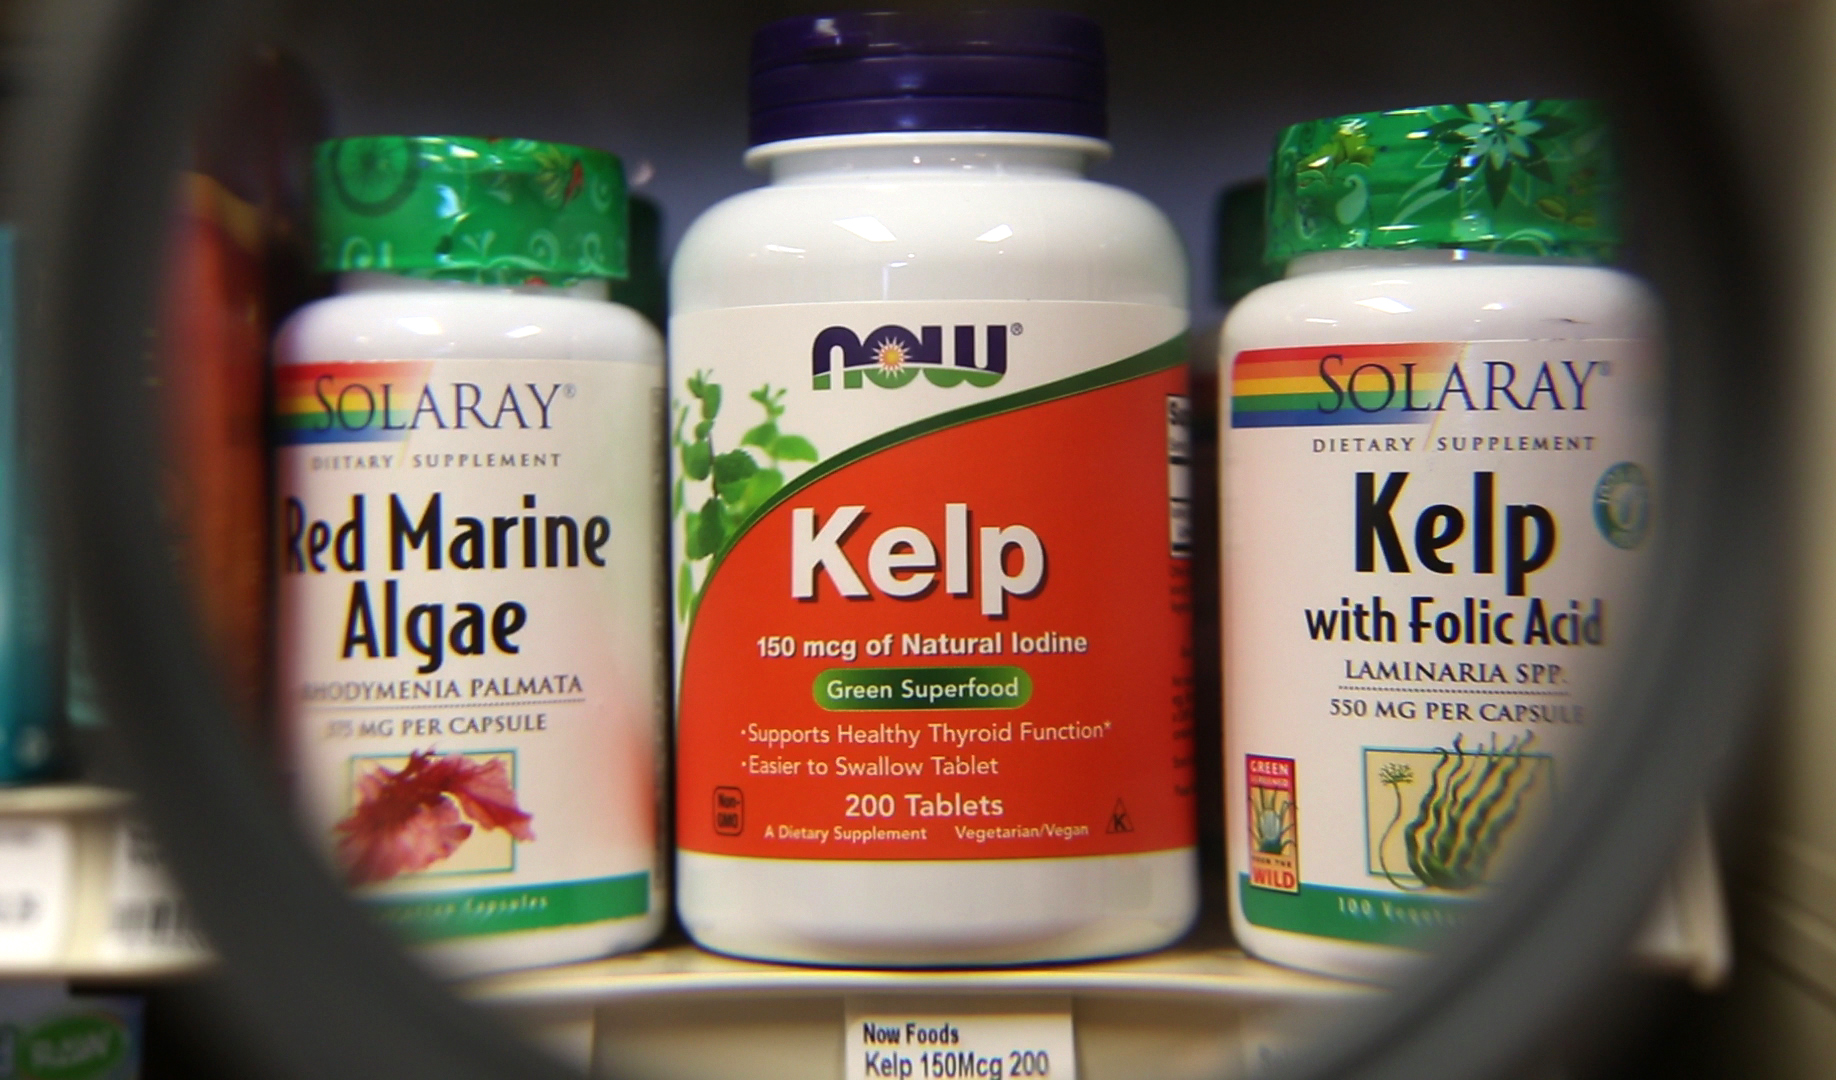 In this Friday, Nov. 6, 2015, kelp tablets are sold at the Royal River Natural Foods store in Freeport, Maine. The harvest of Maine seaweed is growing in recent years as interest grows in the varied uses of marine algae. (AP Photo/Robert F. Bukaty)